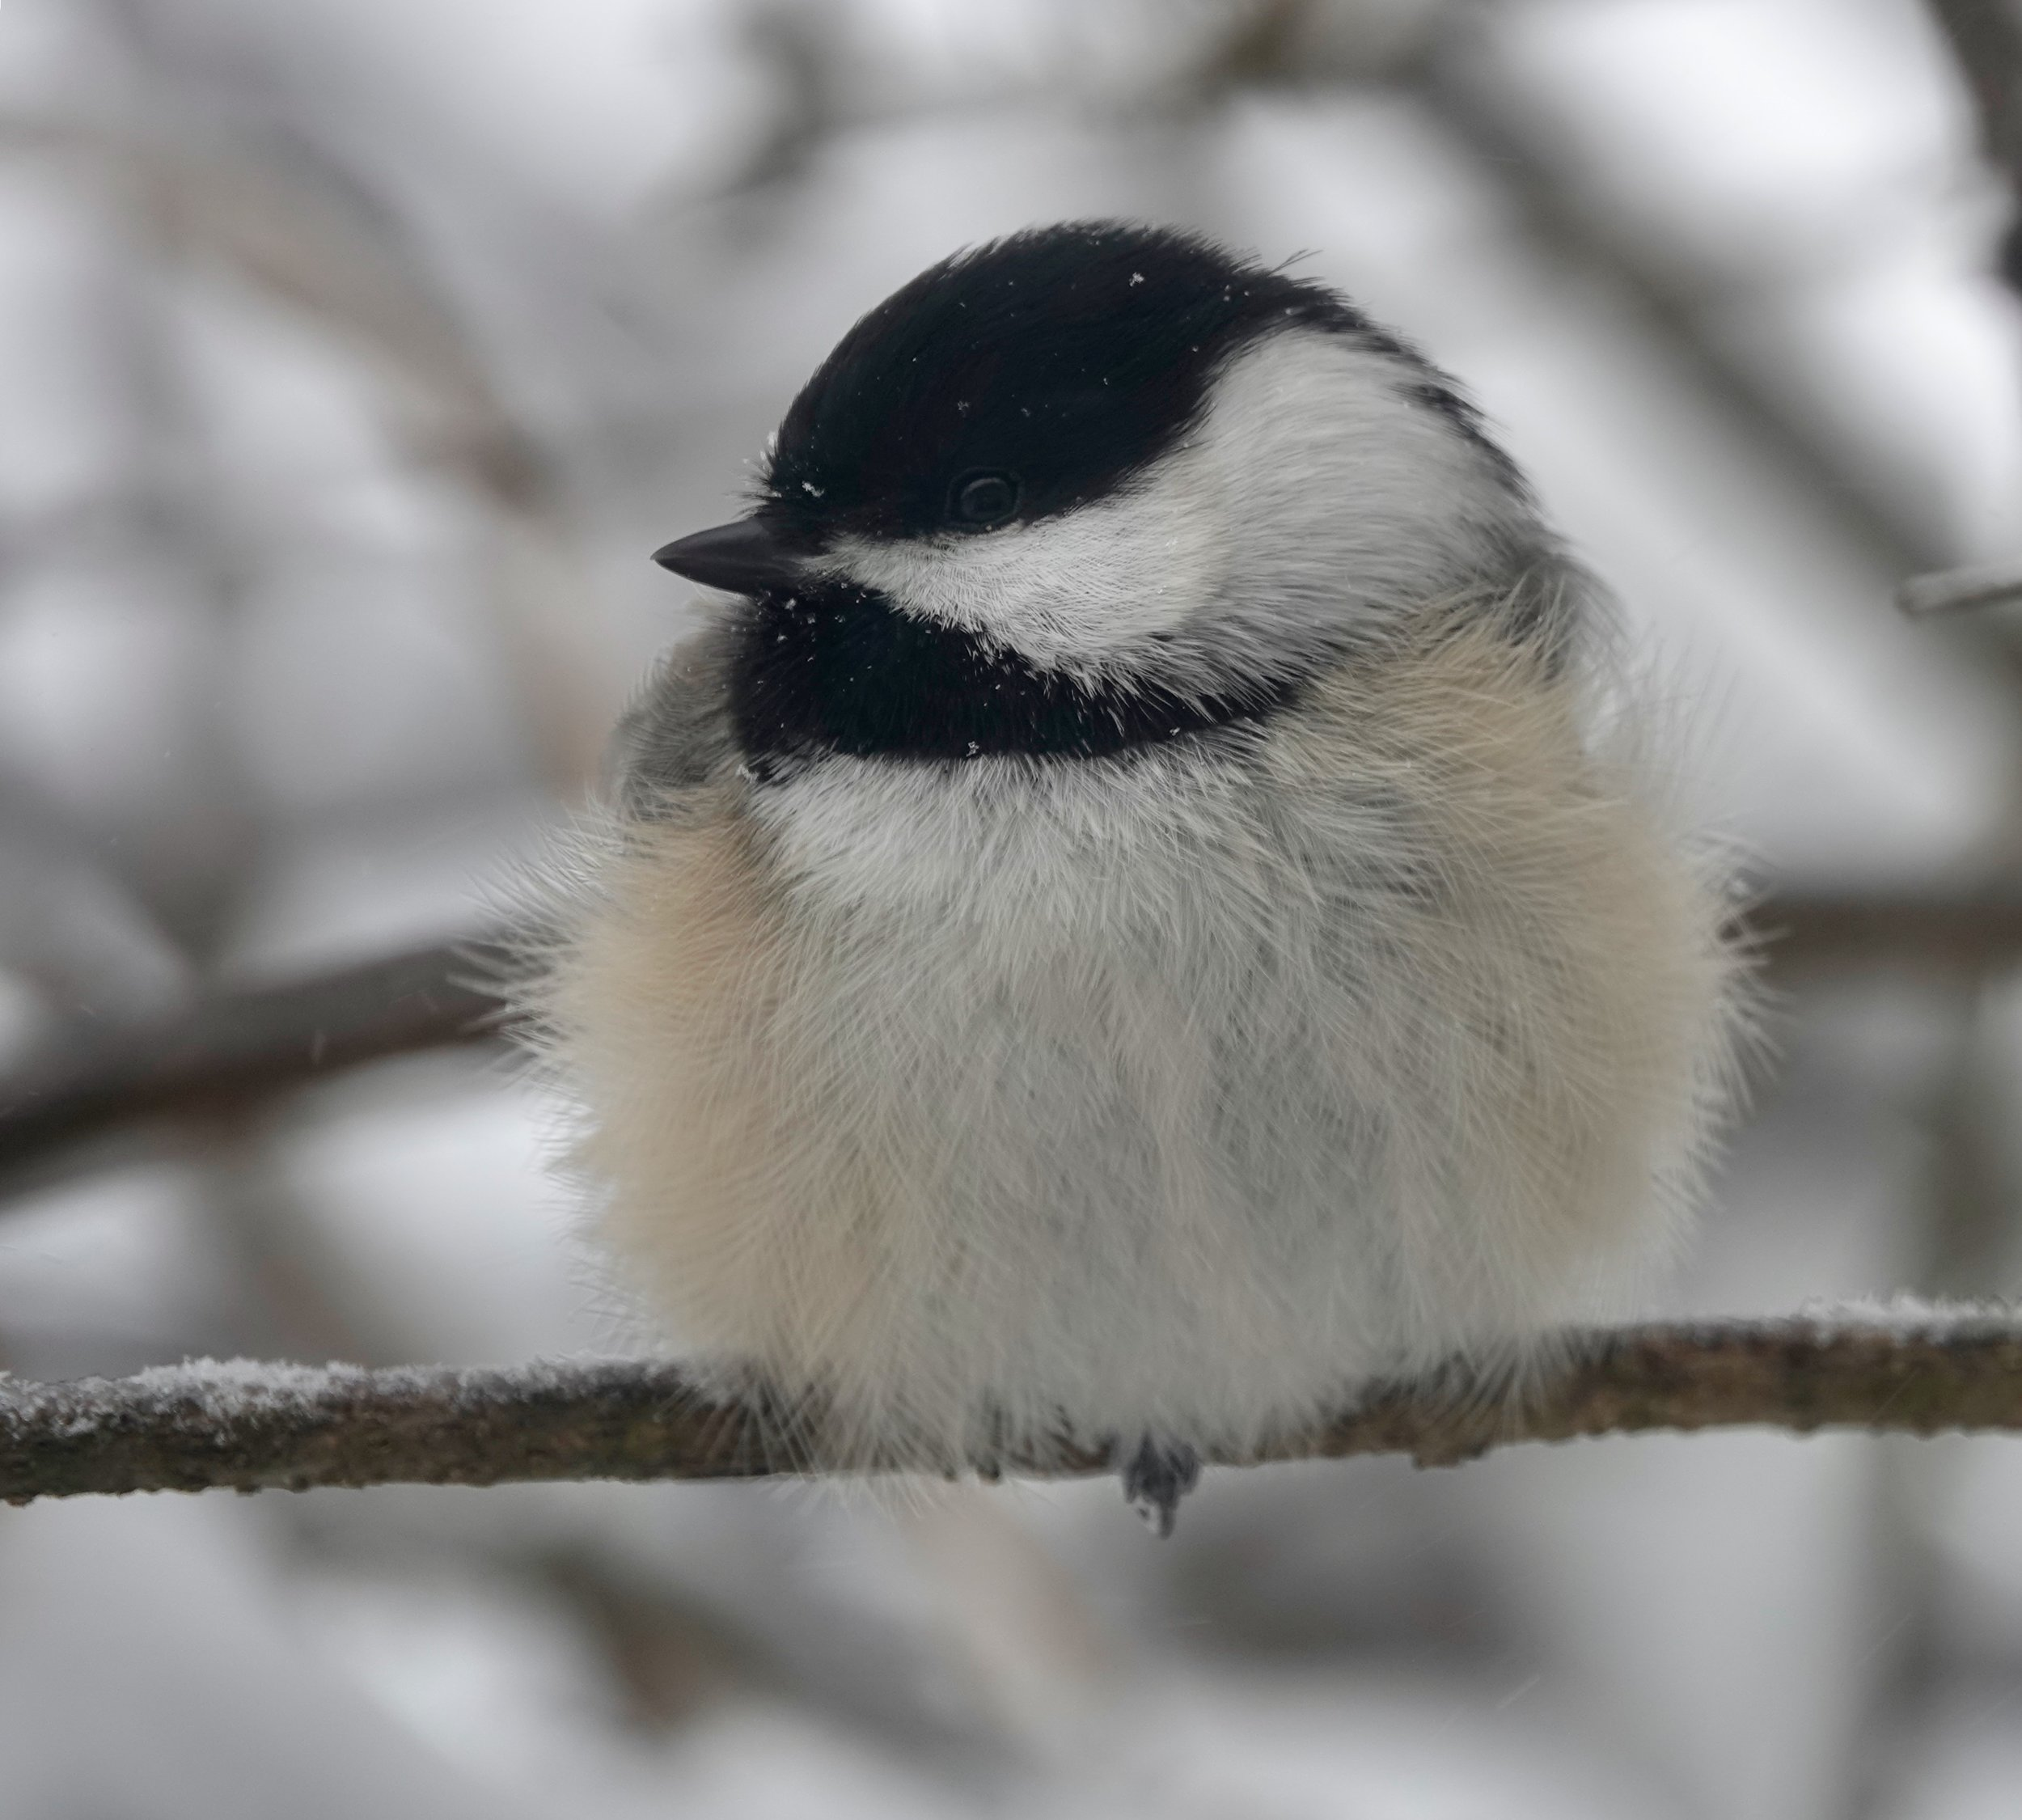 And in today's views: A bodacious black-capped chickadee.